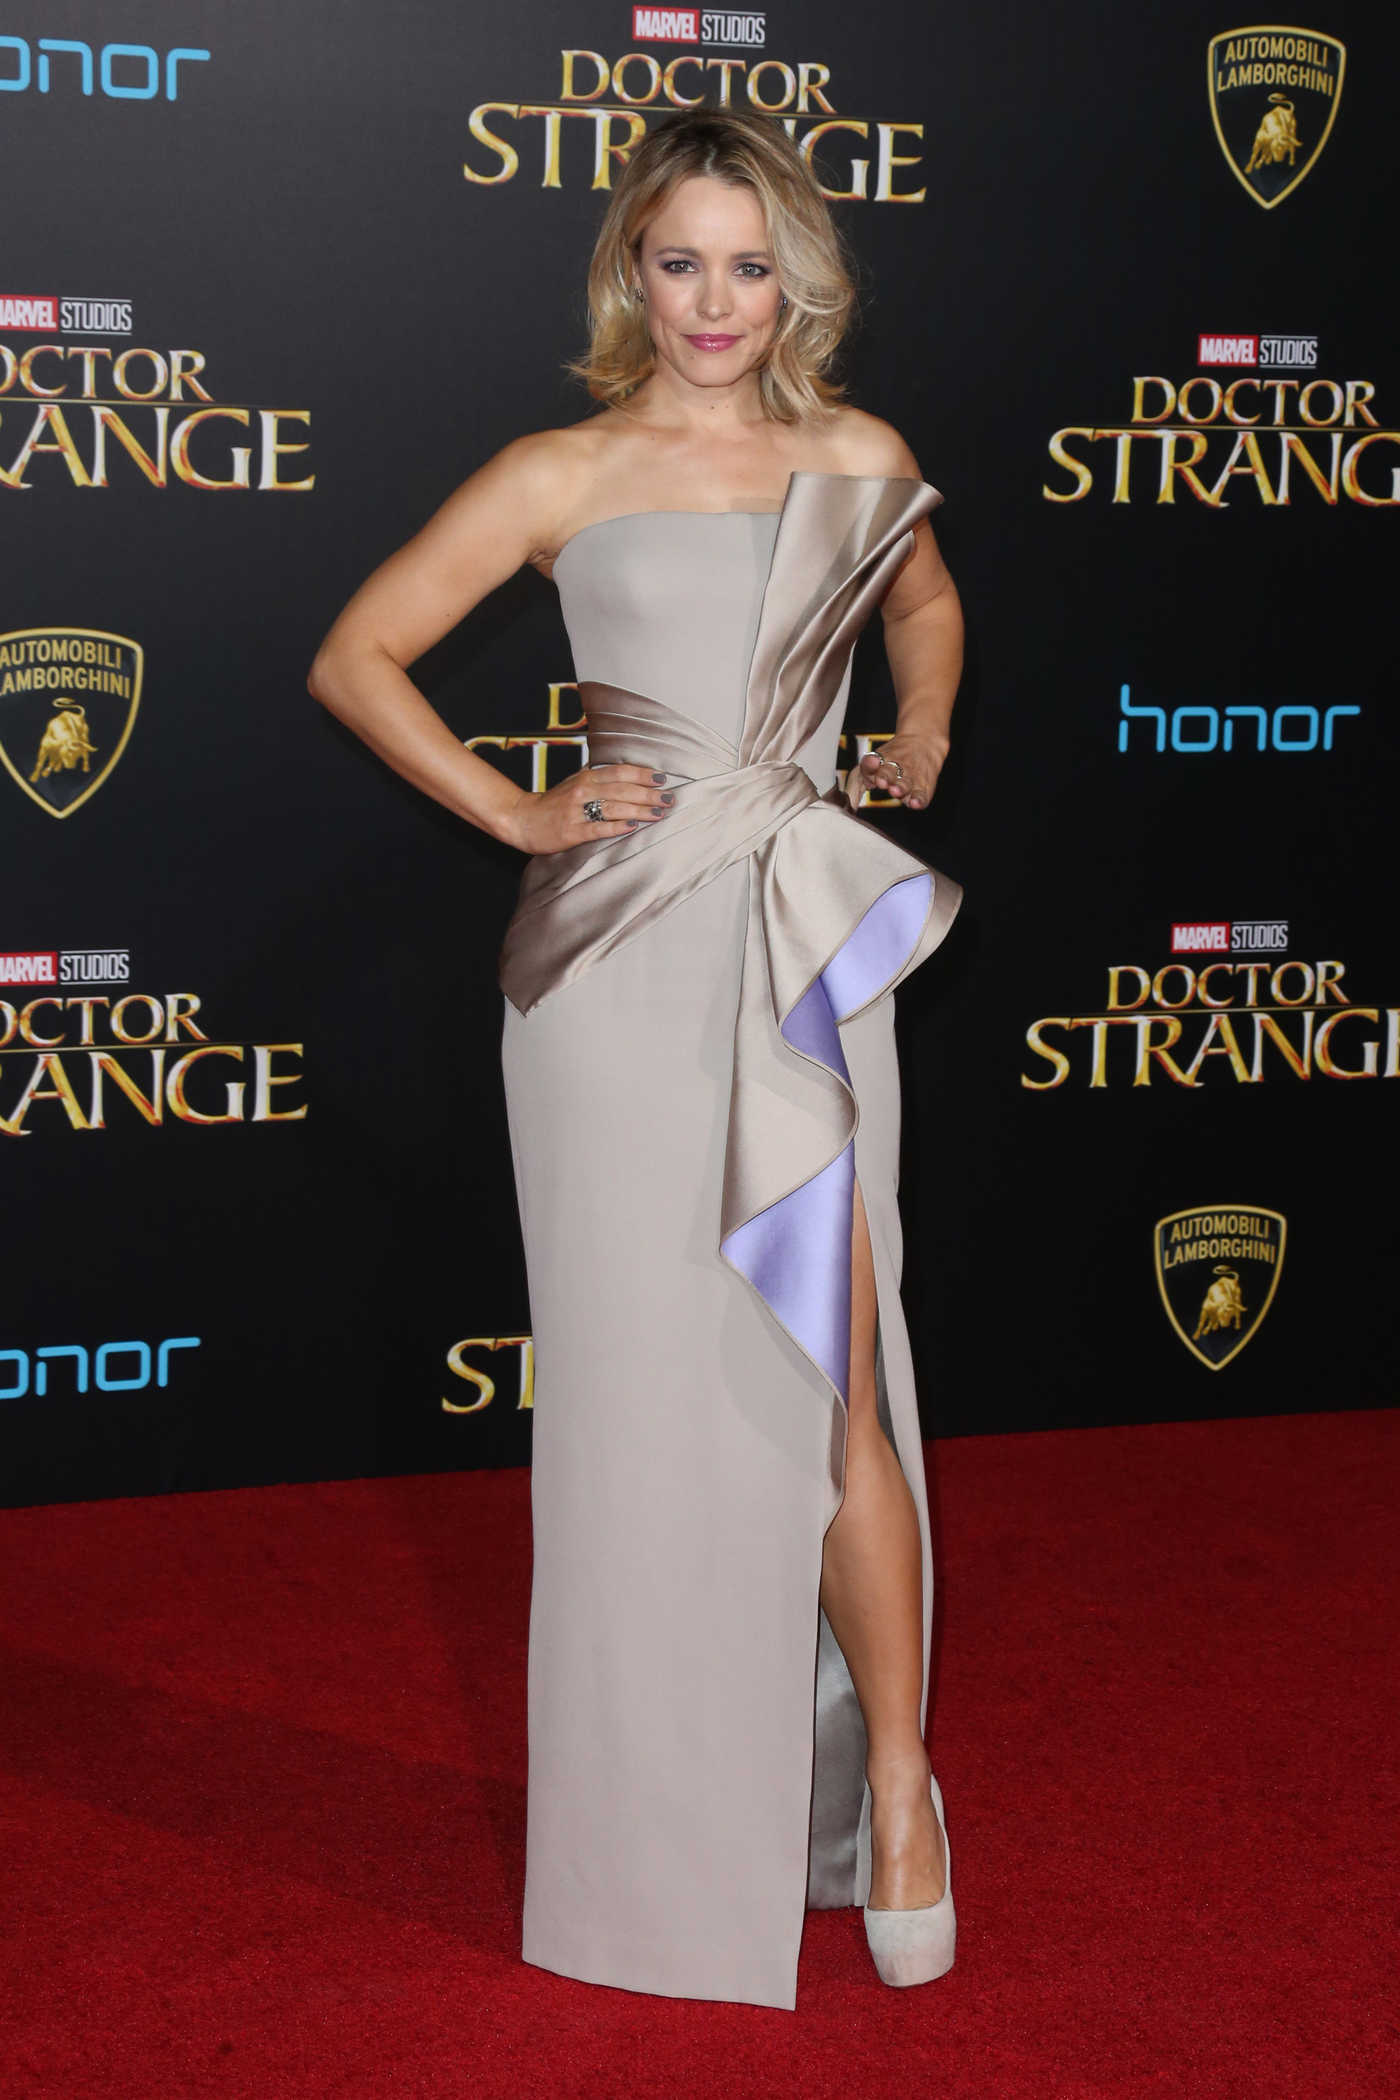 Rachel McAdams at the Doctor Strange Premiere at the El Capitan Theatre in Hollywood 10/20/2016